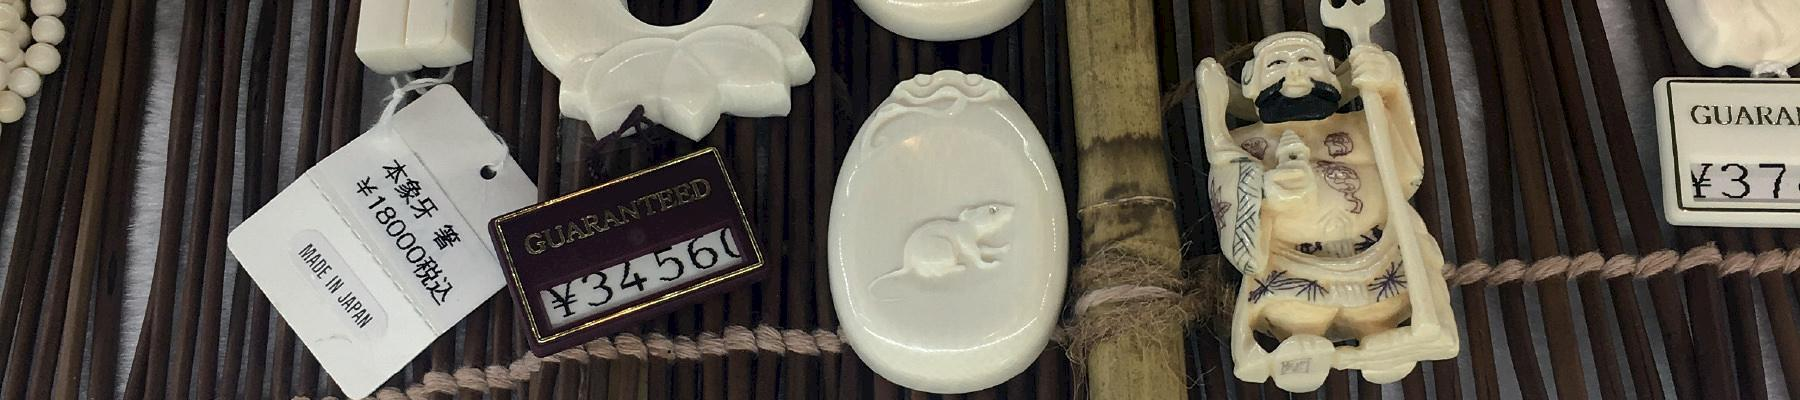 "Display of ivory items at a shop in Tokyo's tourist areas. A sticker promotes ""made in Japan"" shown also in Chinese and Korean © TRAFFIC"